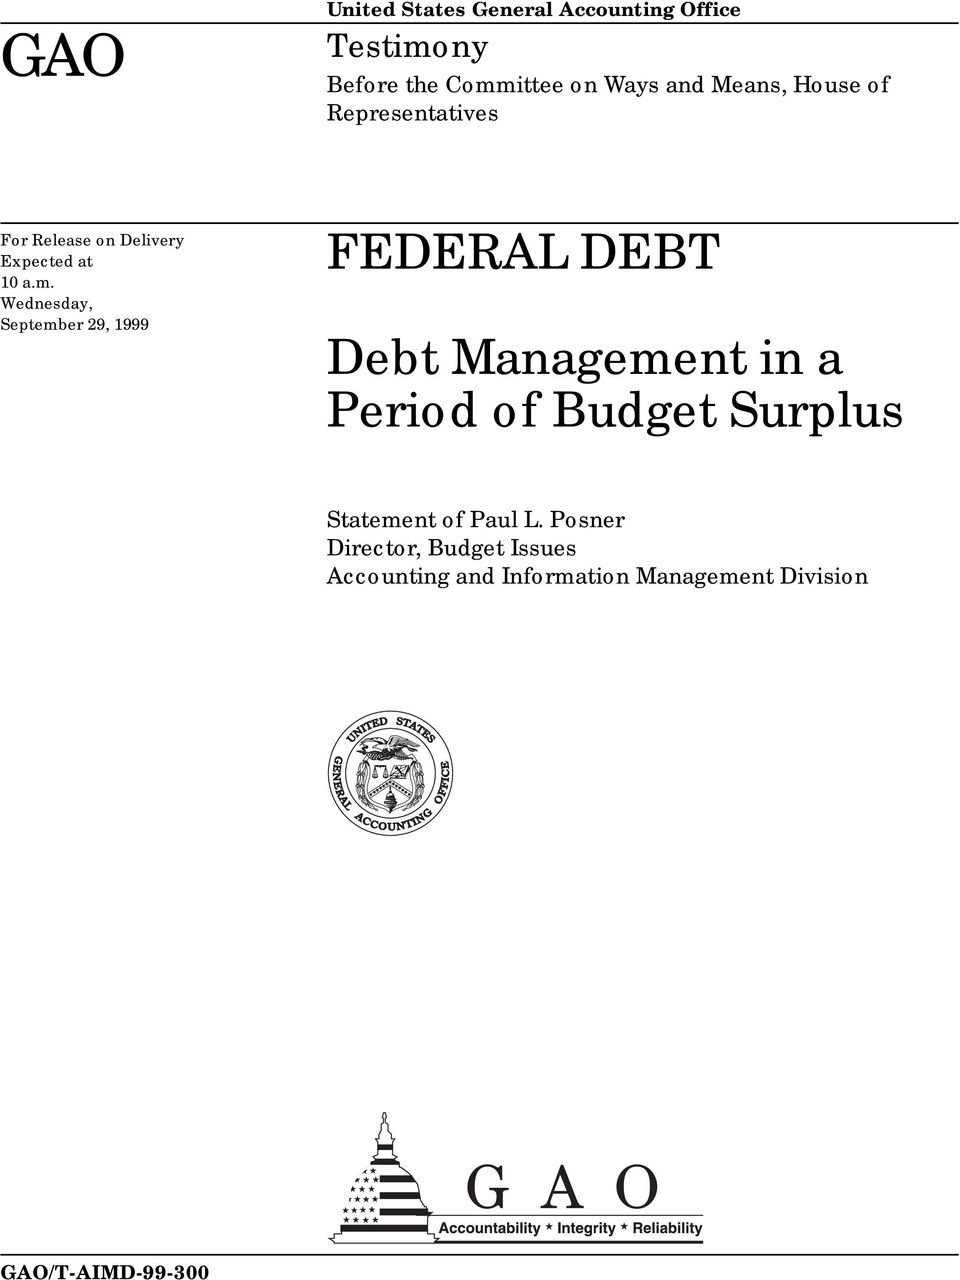 Wednesday, September 29, 1999 FEDERAL DEBT Debt Management in a Period of Budget